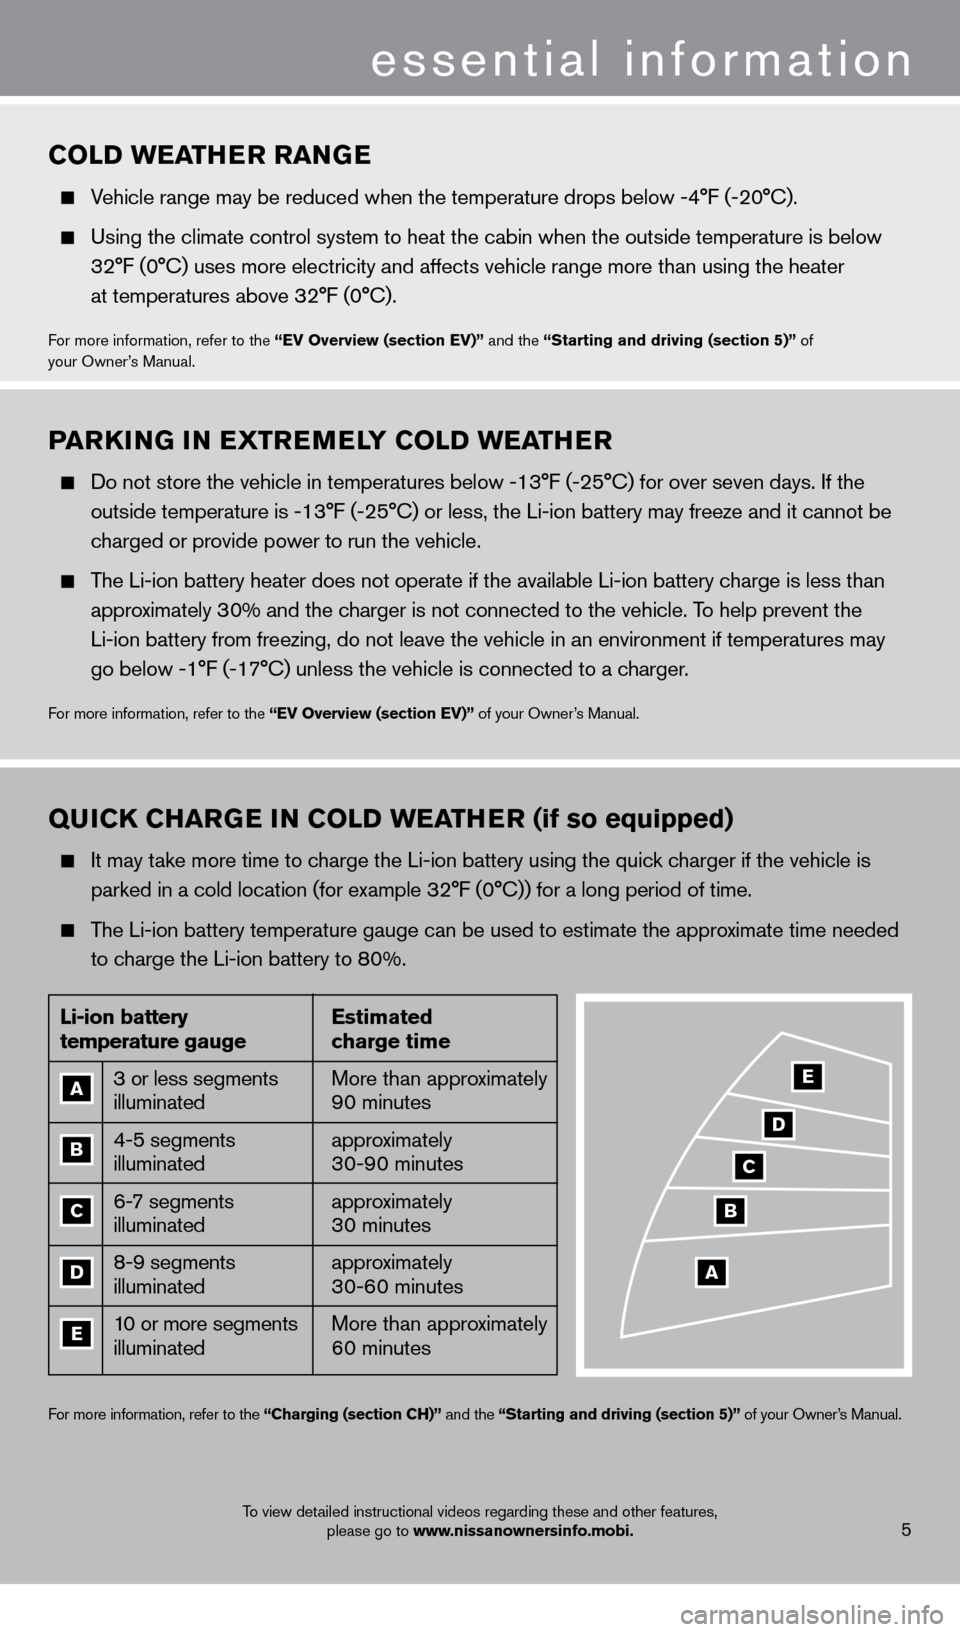 NISSAN LEAF 2013 1.G Quick Reference Guide essential information 5 COLD weaTHer  ra NGe   Vehicle range may be reduced when the temperature drops below -4°F (-20°C).     Using the climate control system to heat the cabin when the outside tem